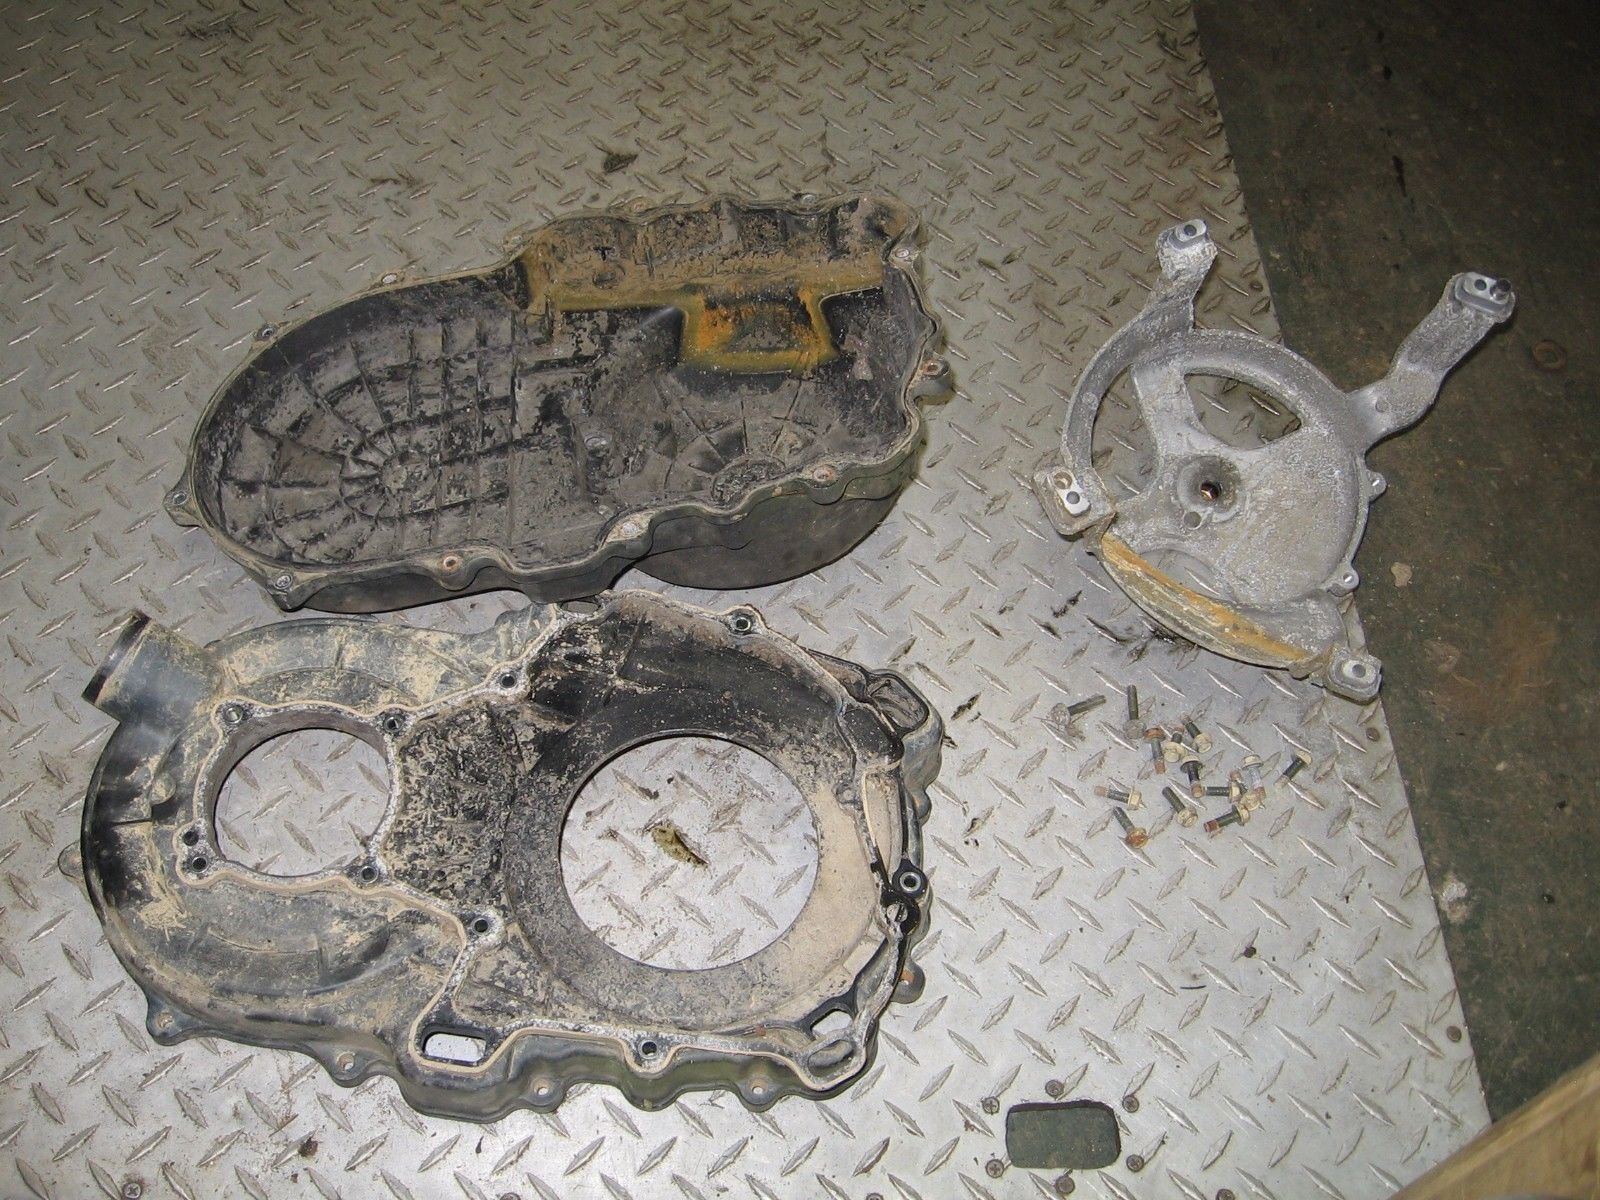 YAMAHA 2004 BRUIN 350 4X4 INNER AND OUTER BELT CLUTCH COVER  PART 30,615